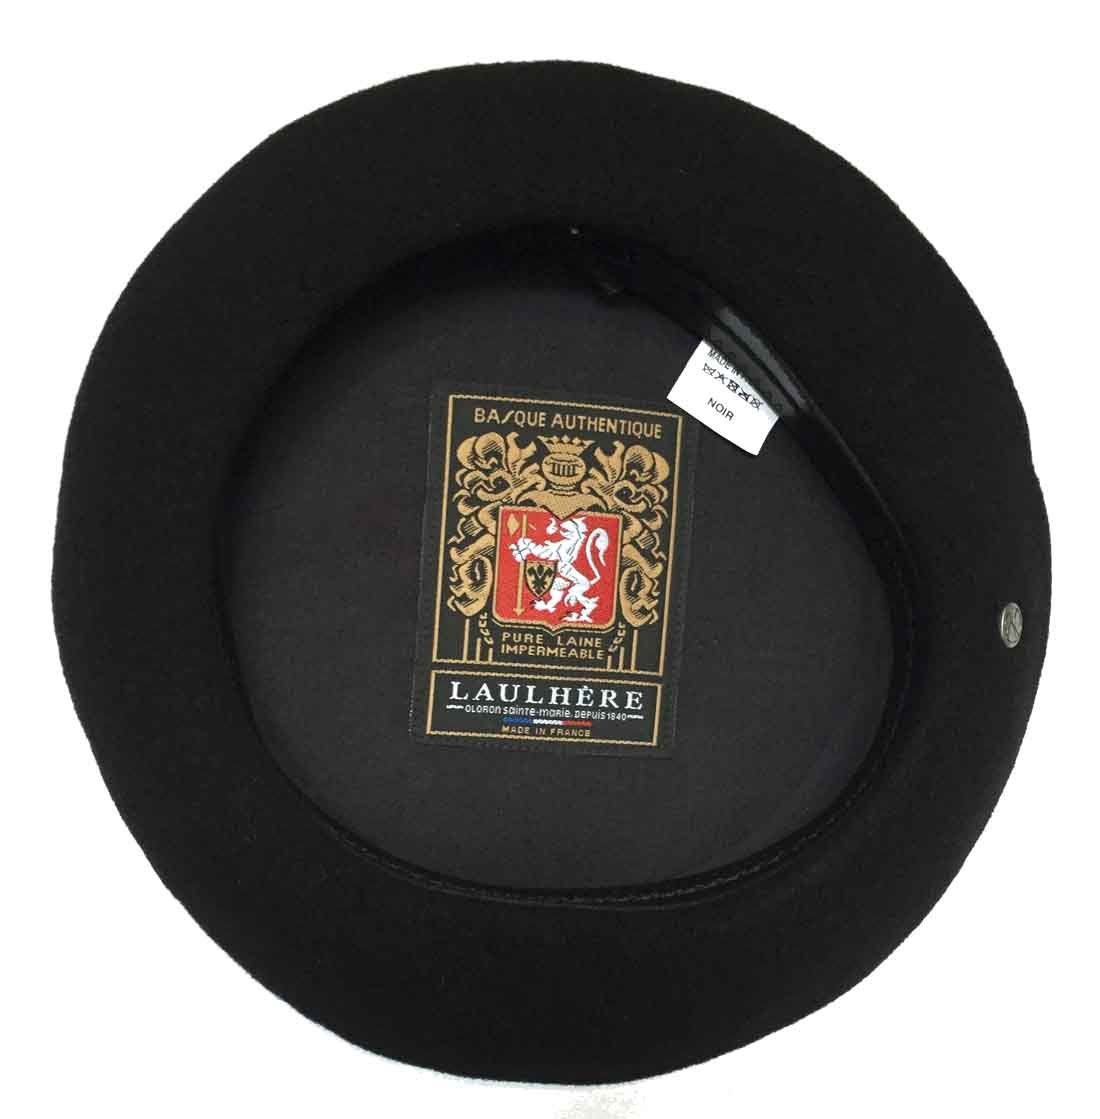 Laulhere Basque Authentique French Anglobasque Wool Beret, Black, Large(59)